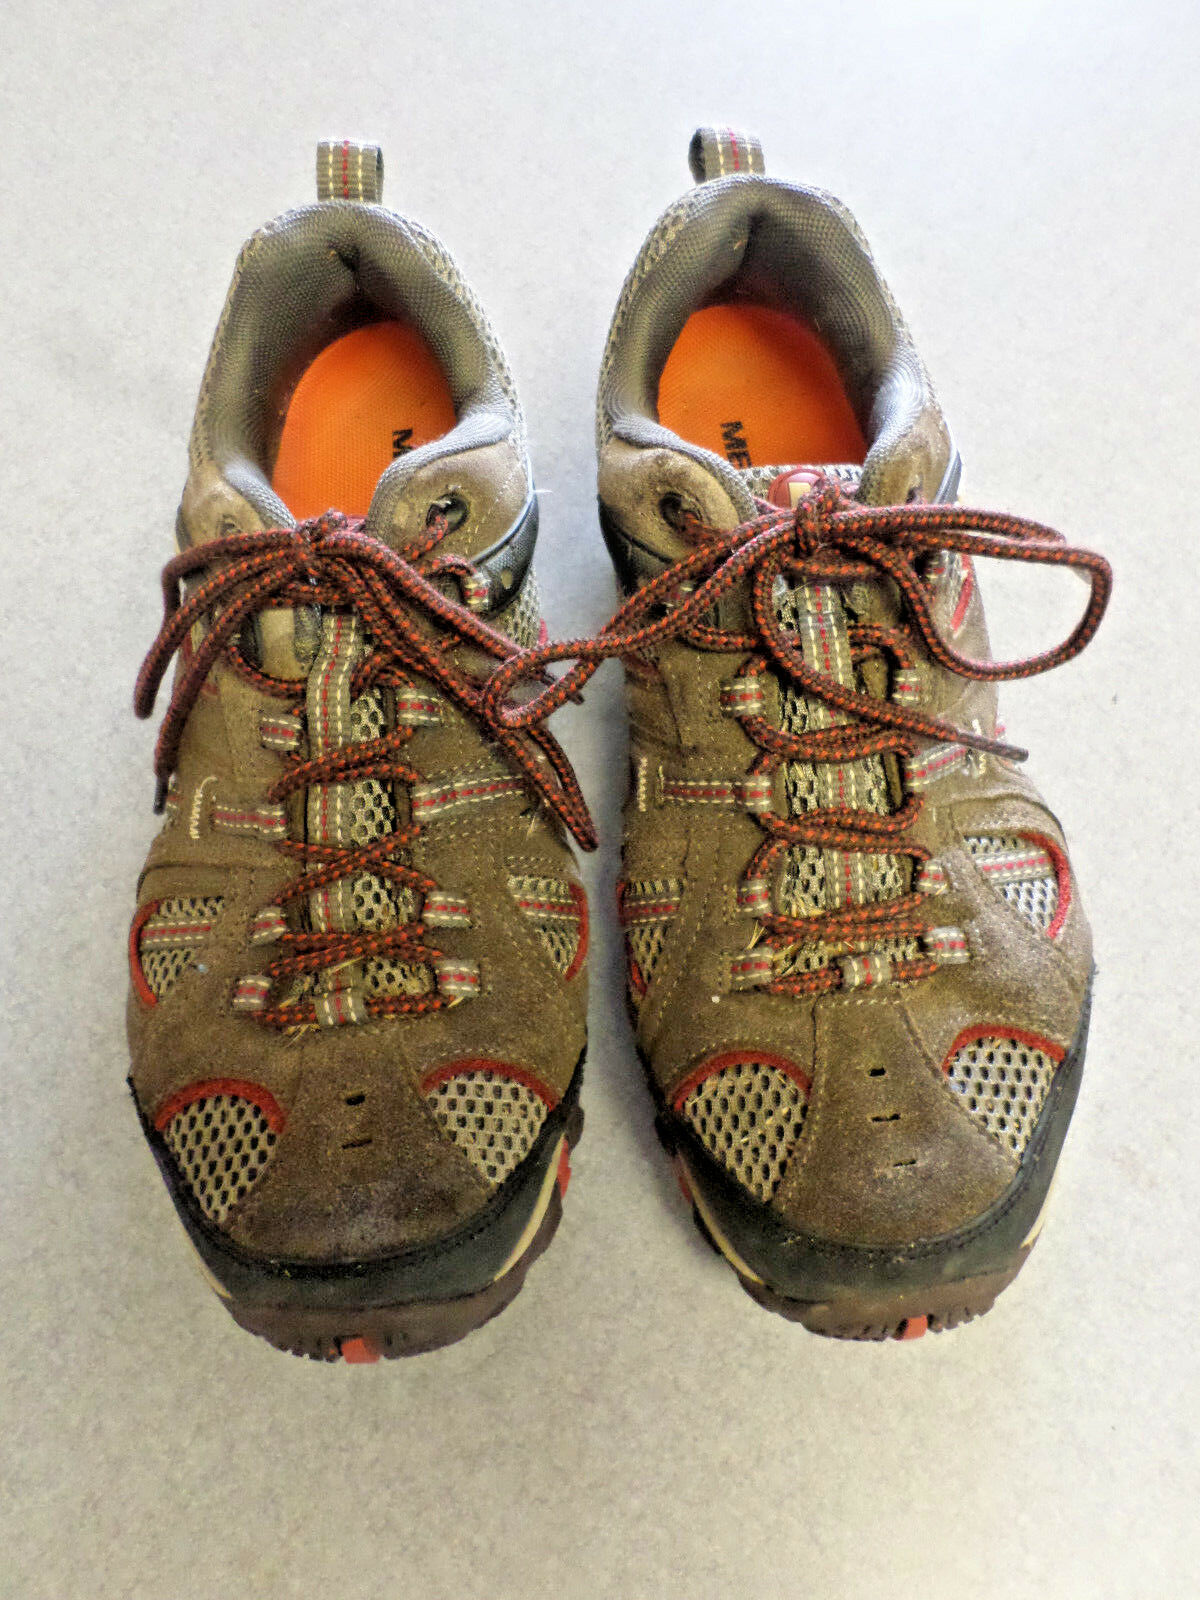 Merrell  Bungee Cord  brown suede and mesh, hiking shoes. Men's 9.5 (eur 43.5)